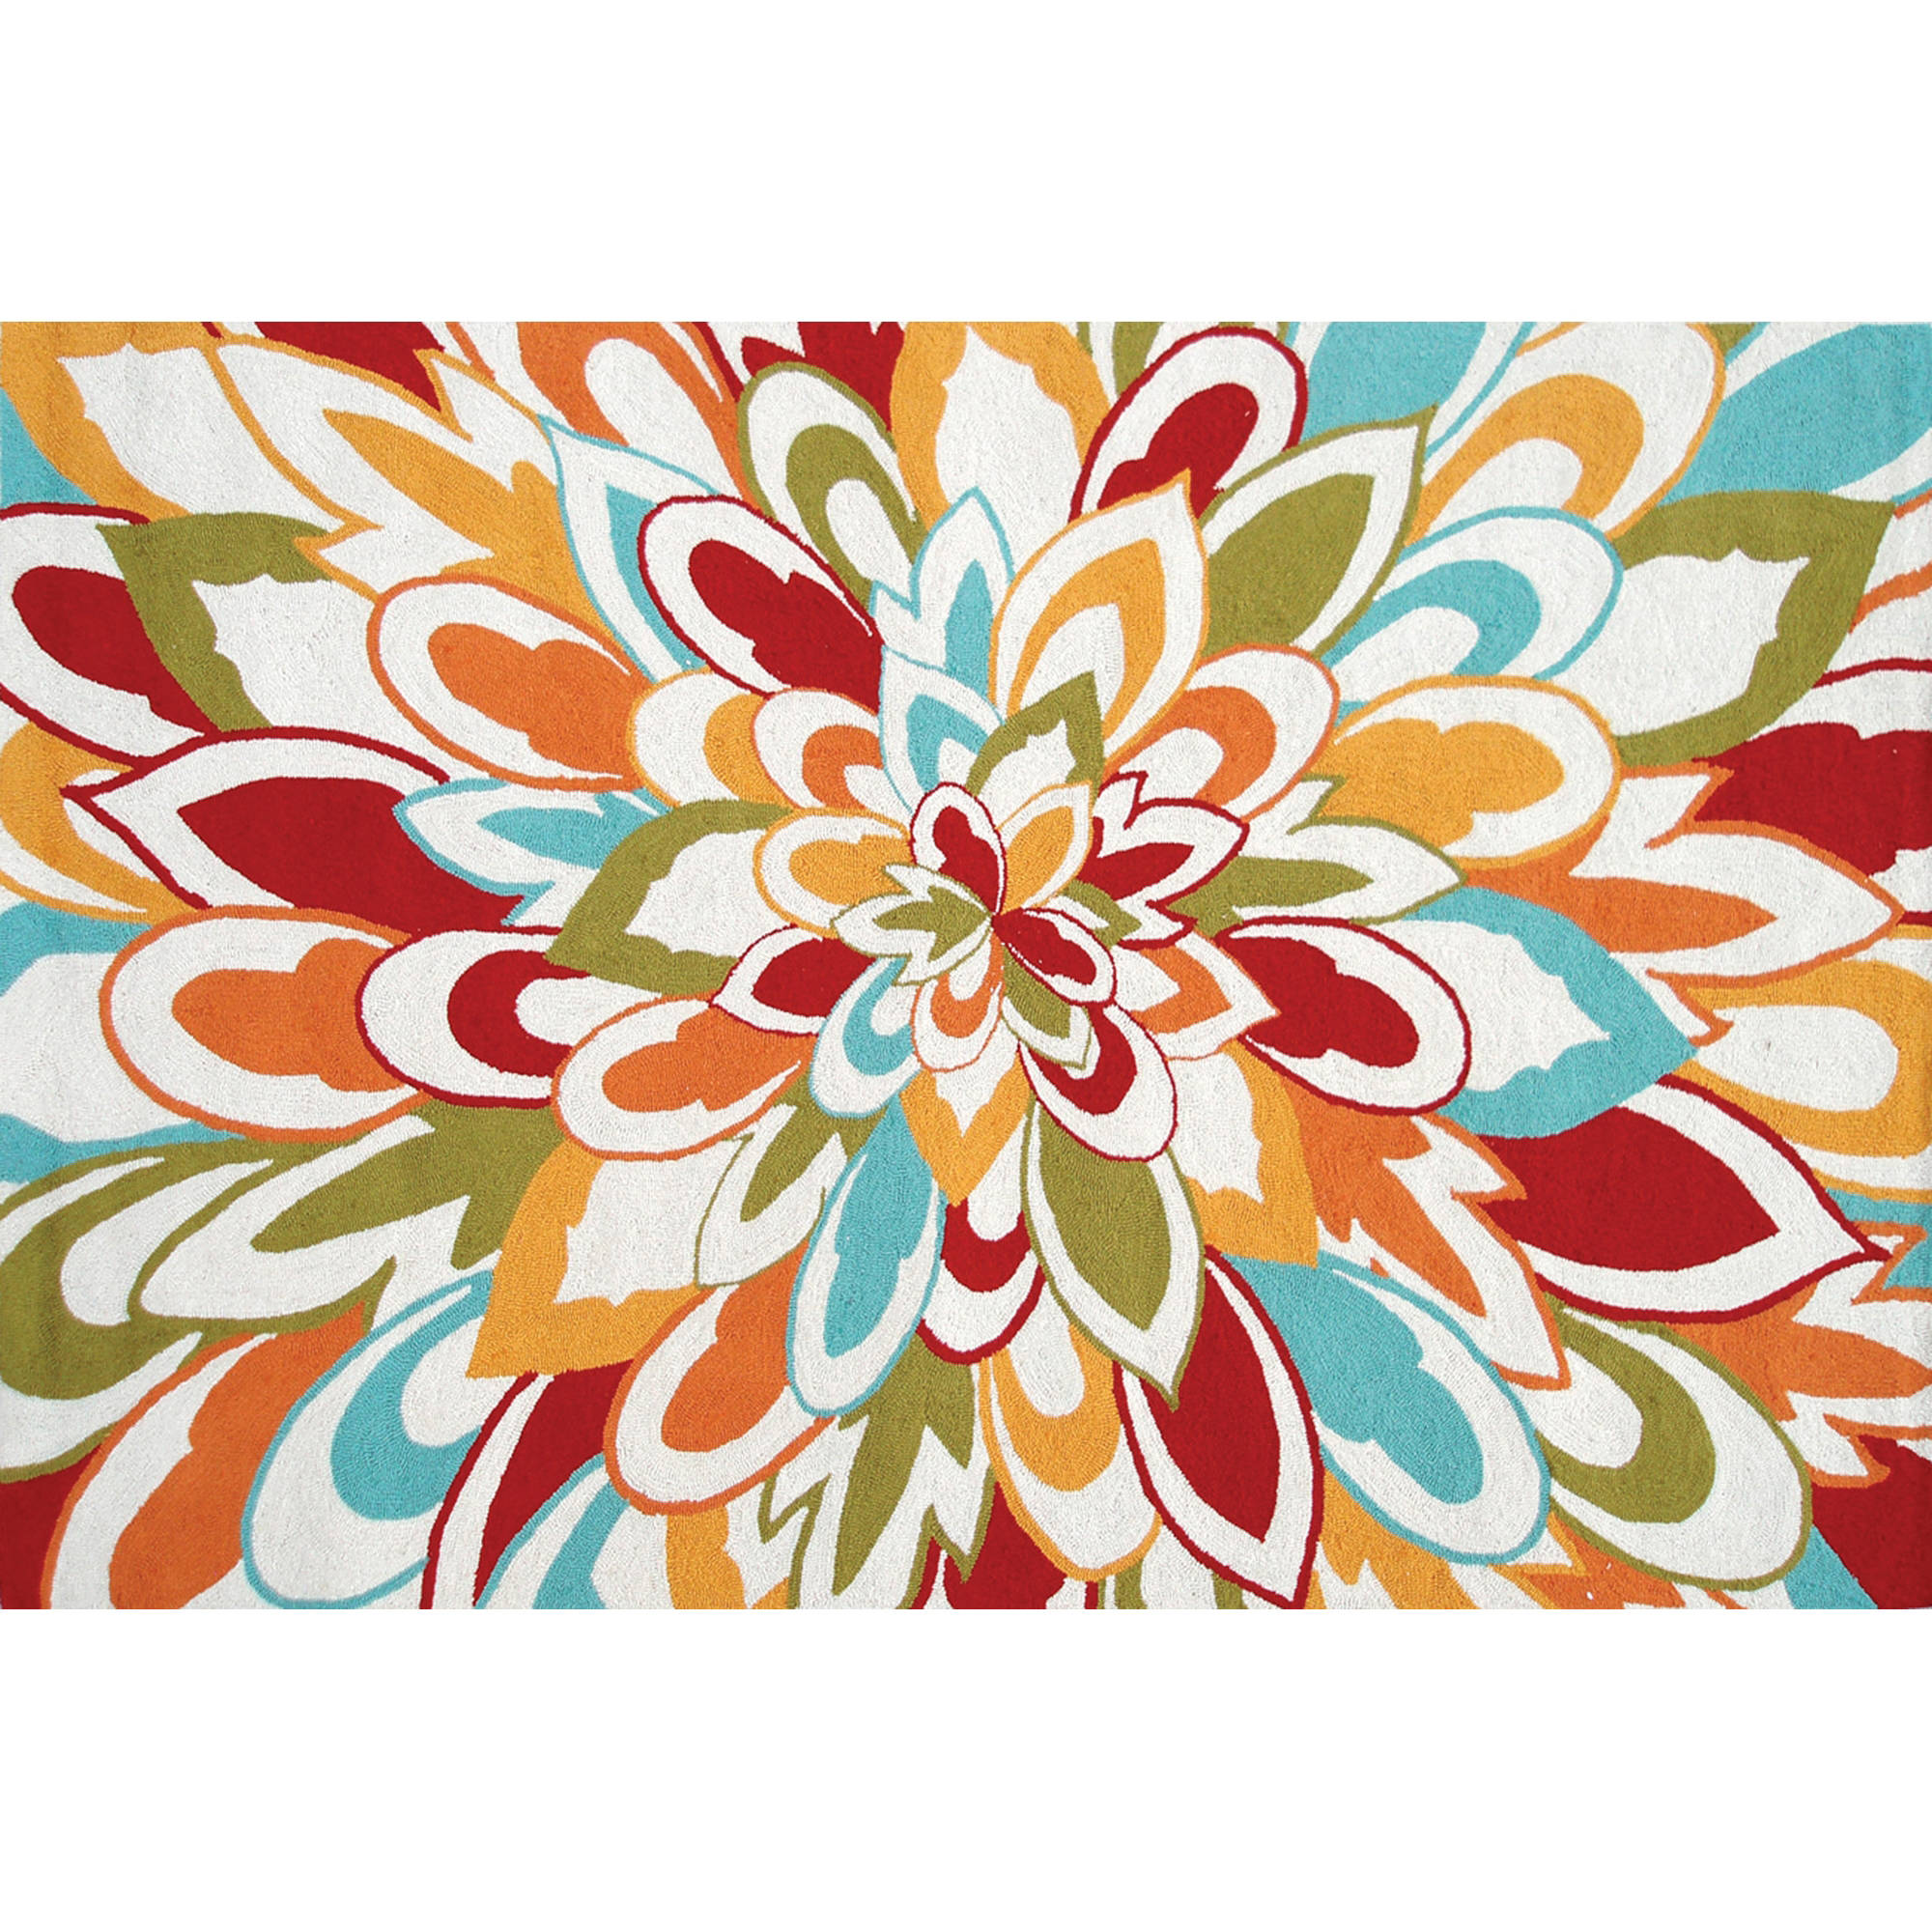 "The Rug Market Bloom 8"" x 10"" Area Rug"